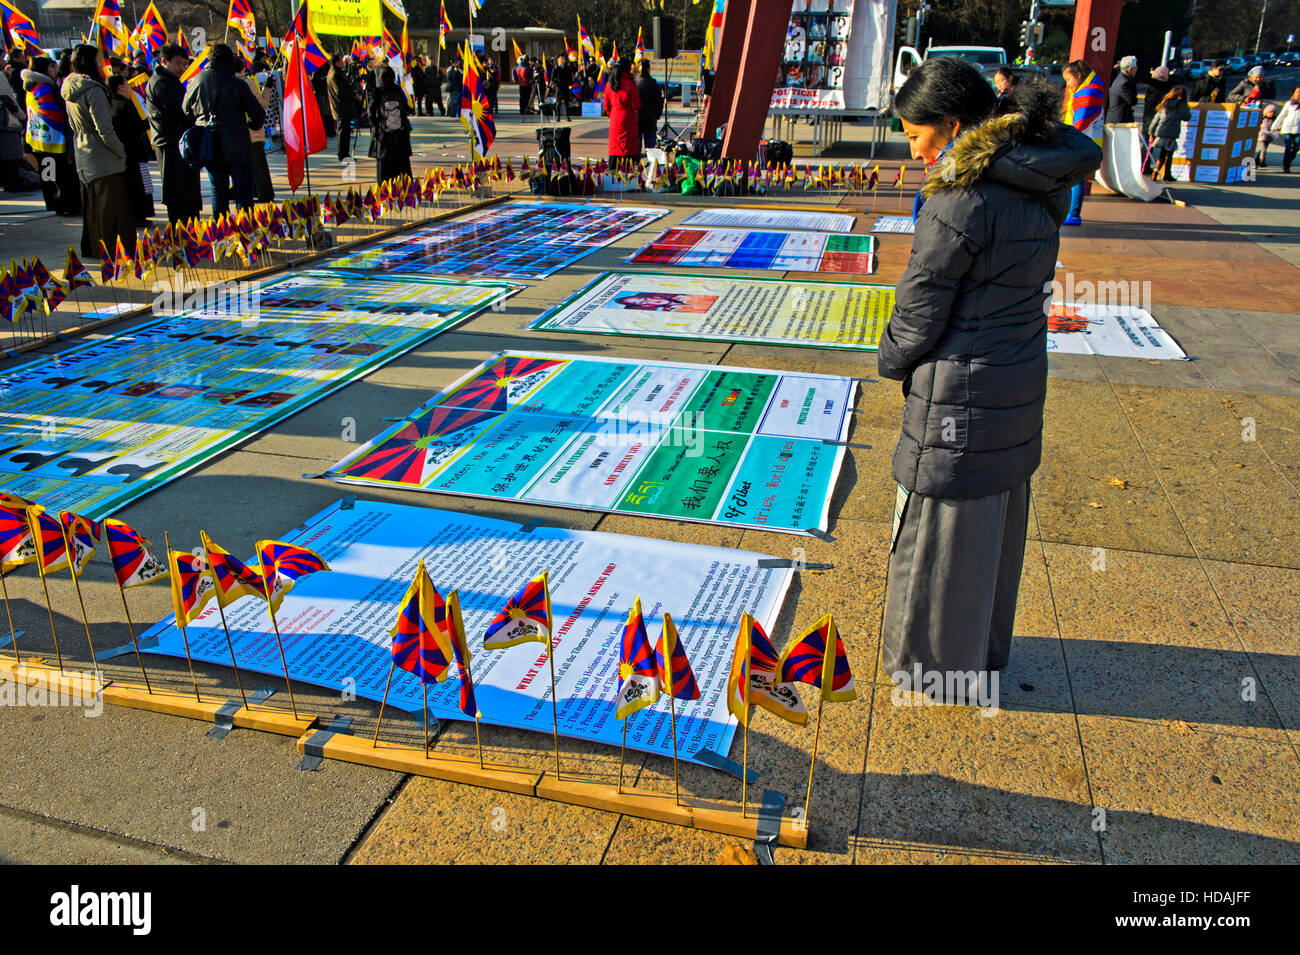 Geneva, Switzerland. 10 December 2016. Tibetan woman looking at posters on Place des Nations in Geneva, Switzerland, - Stock Image